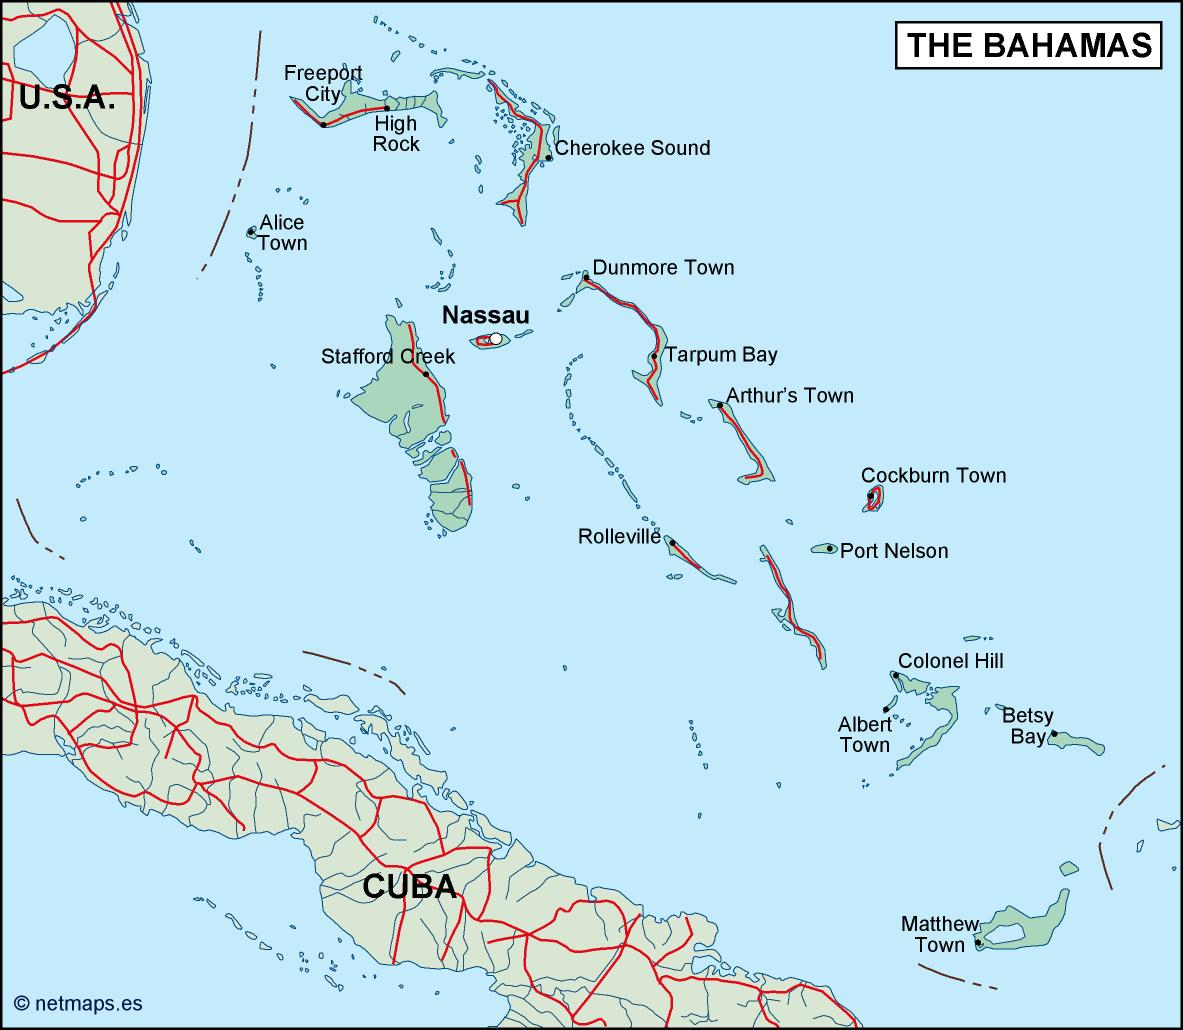 bahamas political map Eps Illustrator Map A vector eps maps